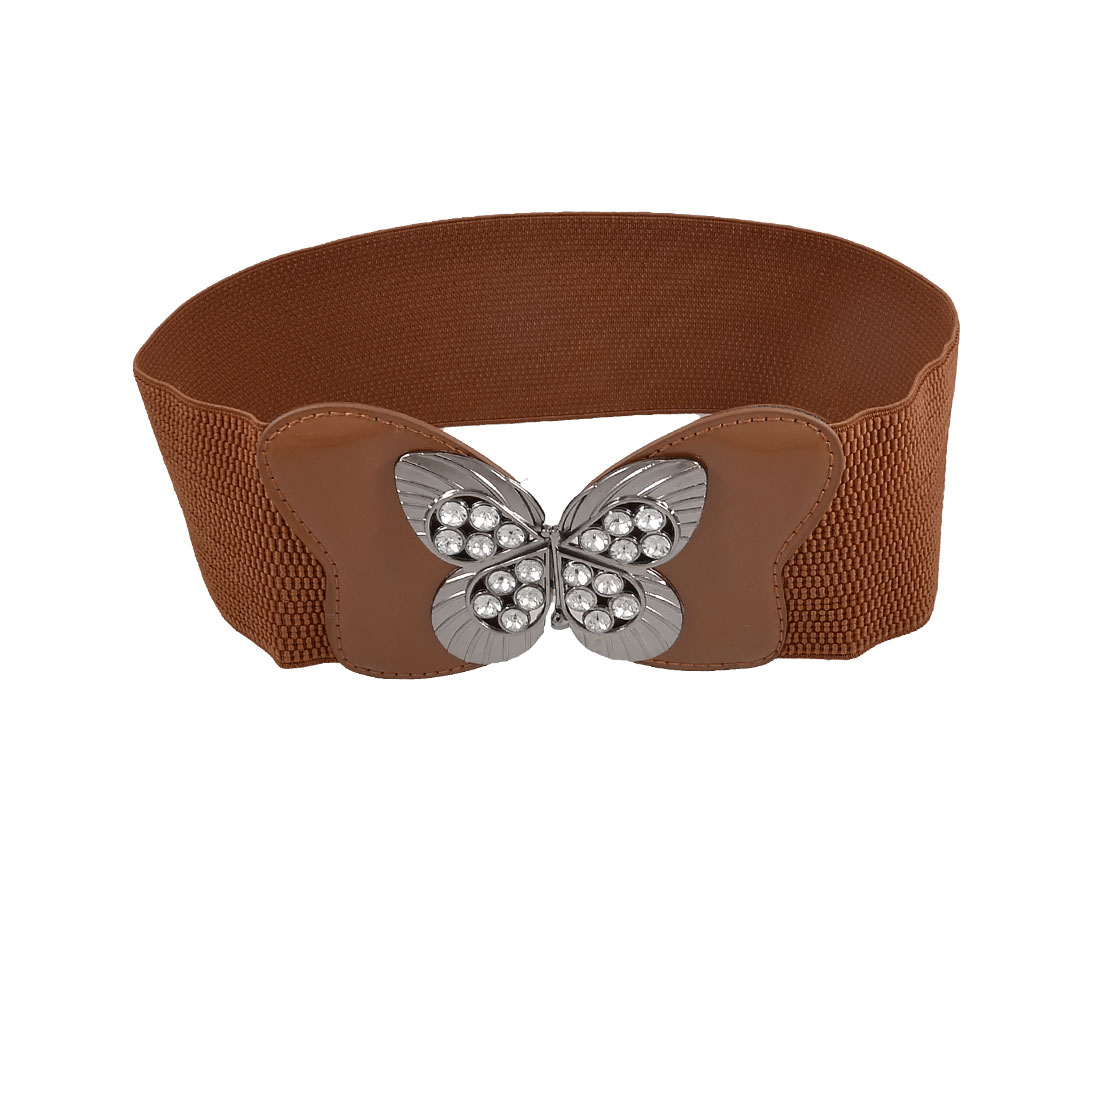 Hollow Butterfly Buckle Rhinestone Inlaid Brown Elastic Waist Belt for Ladies